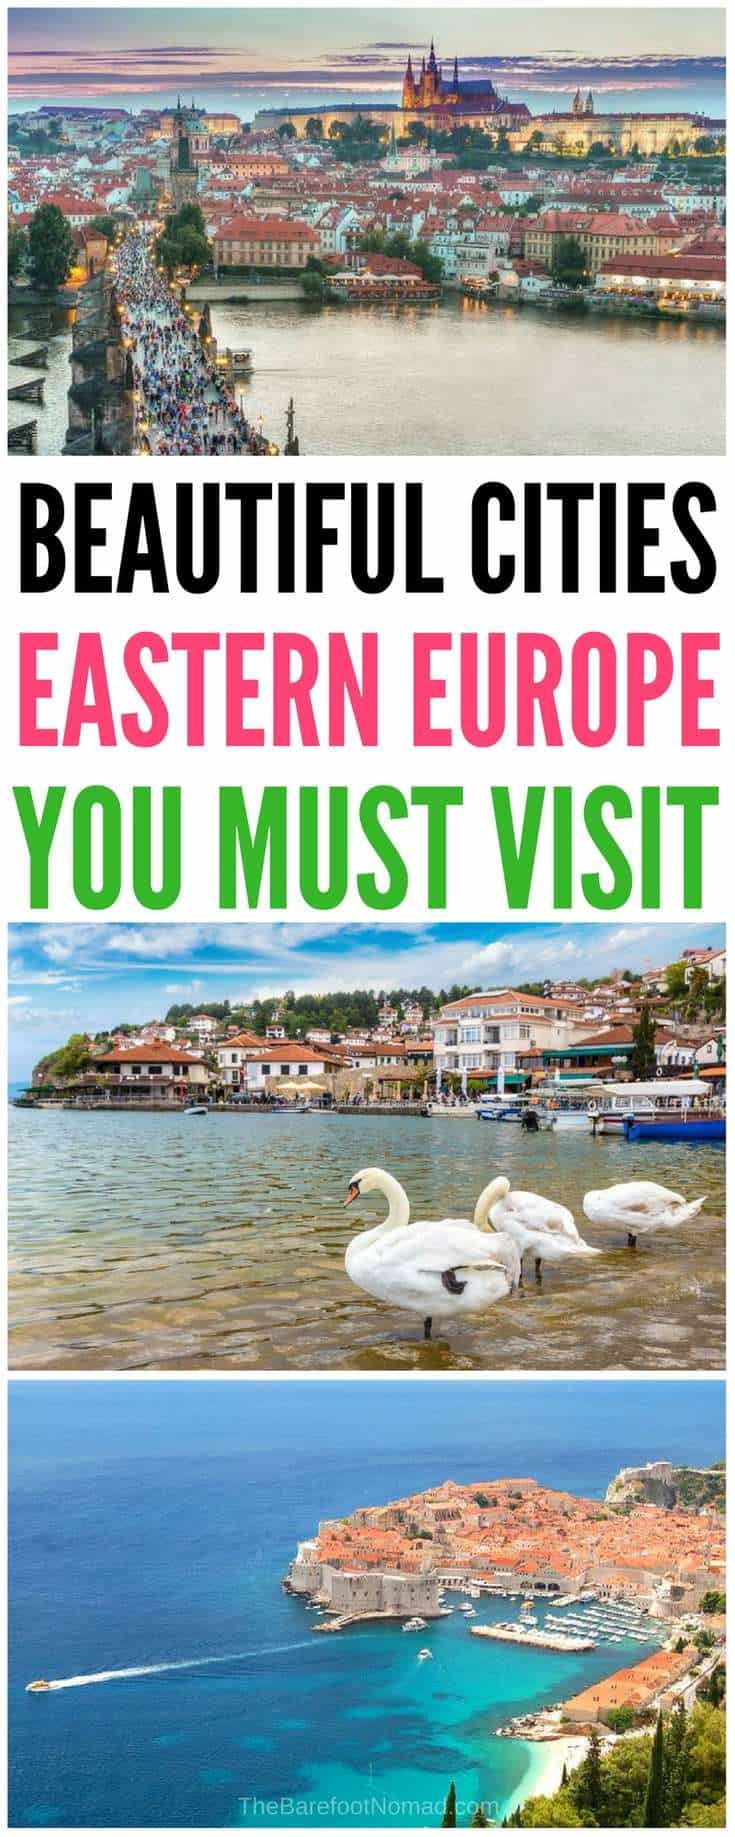 10 of the most beautiful cities in Eastern Europe. Have you always wanted to visit the beautiful cities in Europe? Here are our tips for the cities in Europe you need to visit as soon as possible like Kiev, Prague, Mostar, Belgrade, Budapest, Dubrovnik, Krakow, Ljubljana and more! #europe #europeancountries #travel #traveltips #Prague